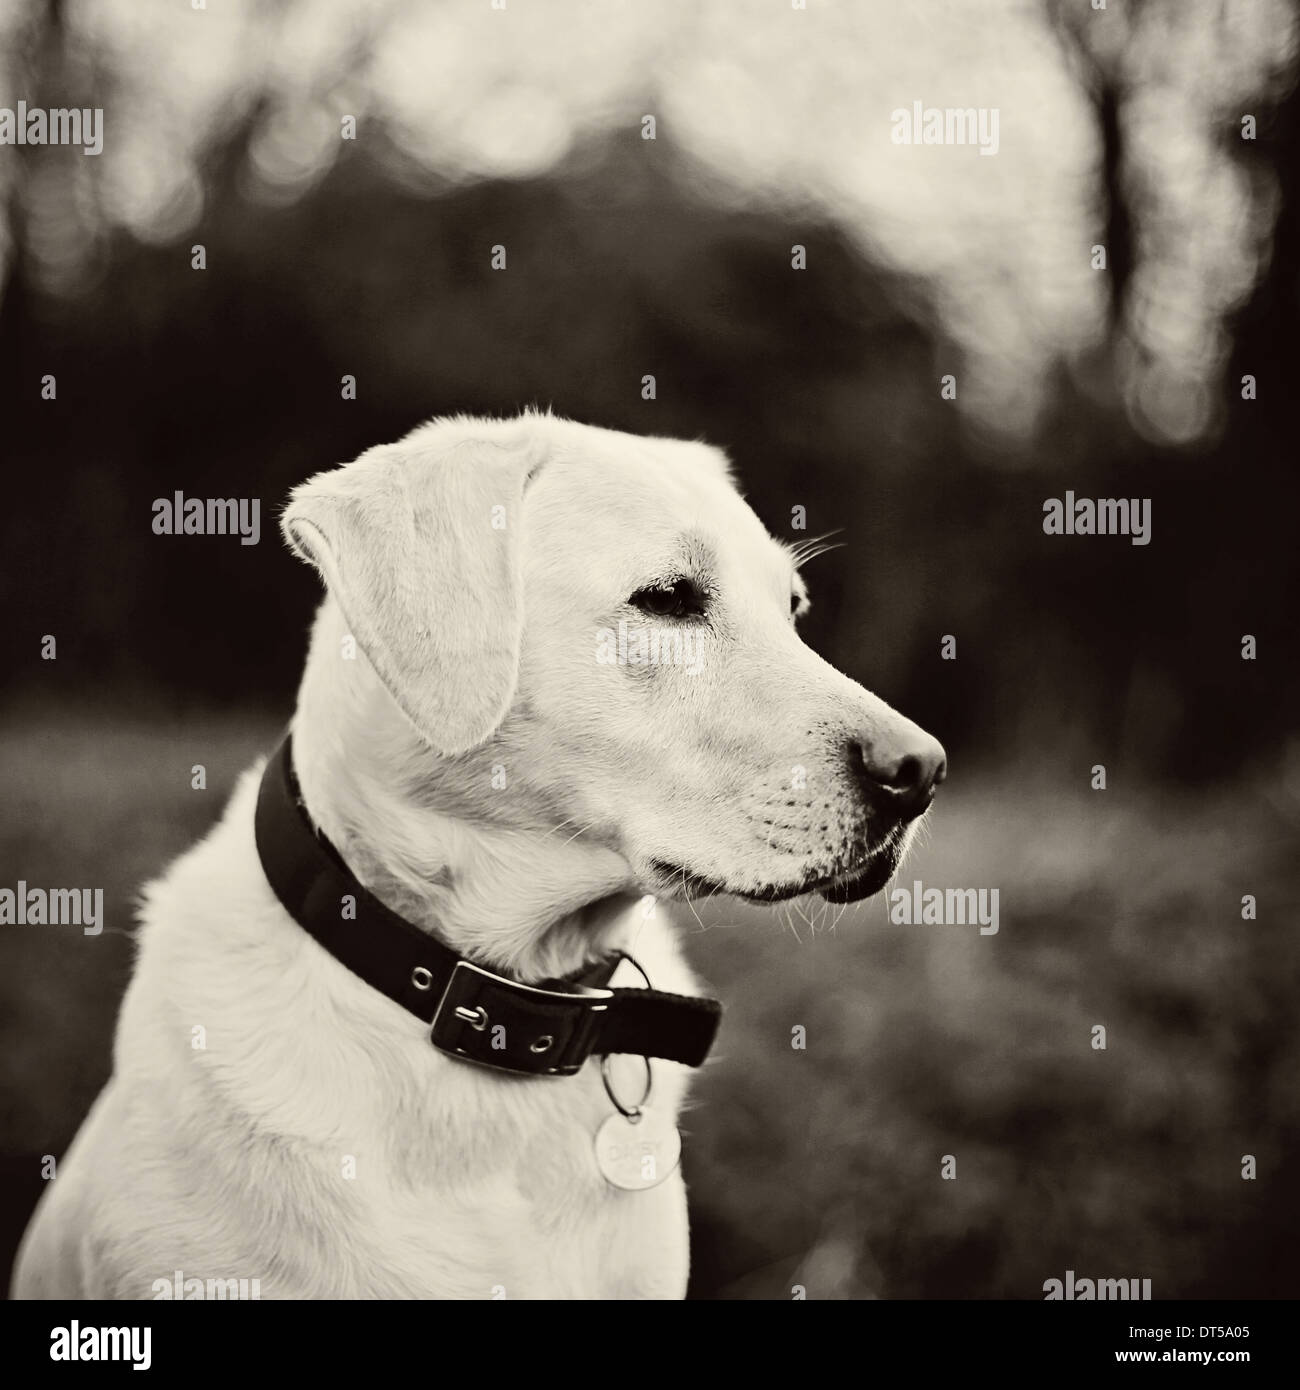 Labrador dog head shot - Stock Image